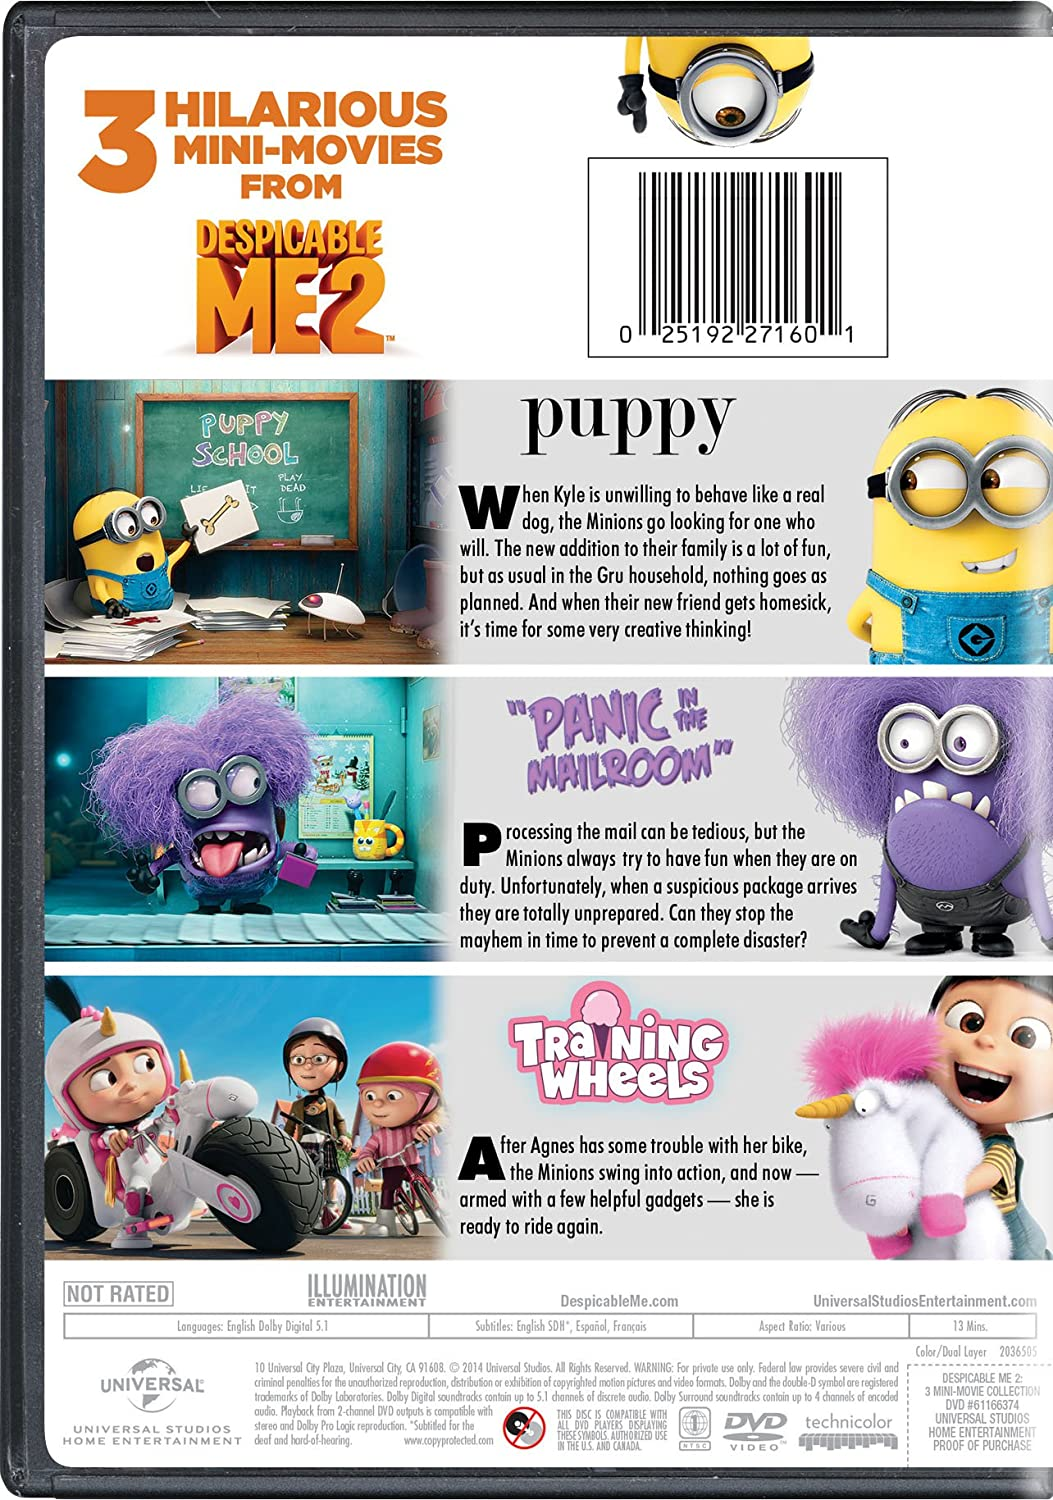 Amazon despicable me 2 3 mini movie collection pierre amazon despicable me 2 3 mini movie collection pierre coffin miranda cosgrove elsie fisher yarrow cheney bruno dequier fabrice joubert biocorpaavc Image collections